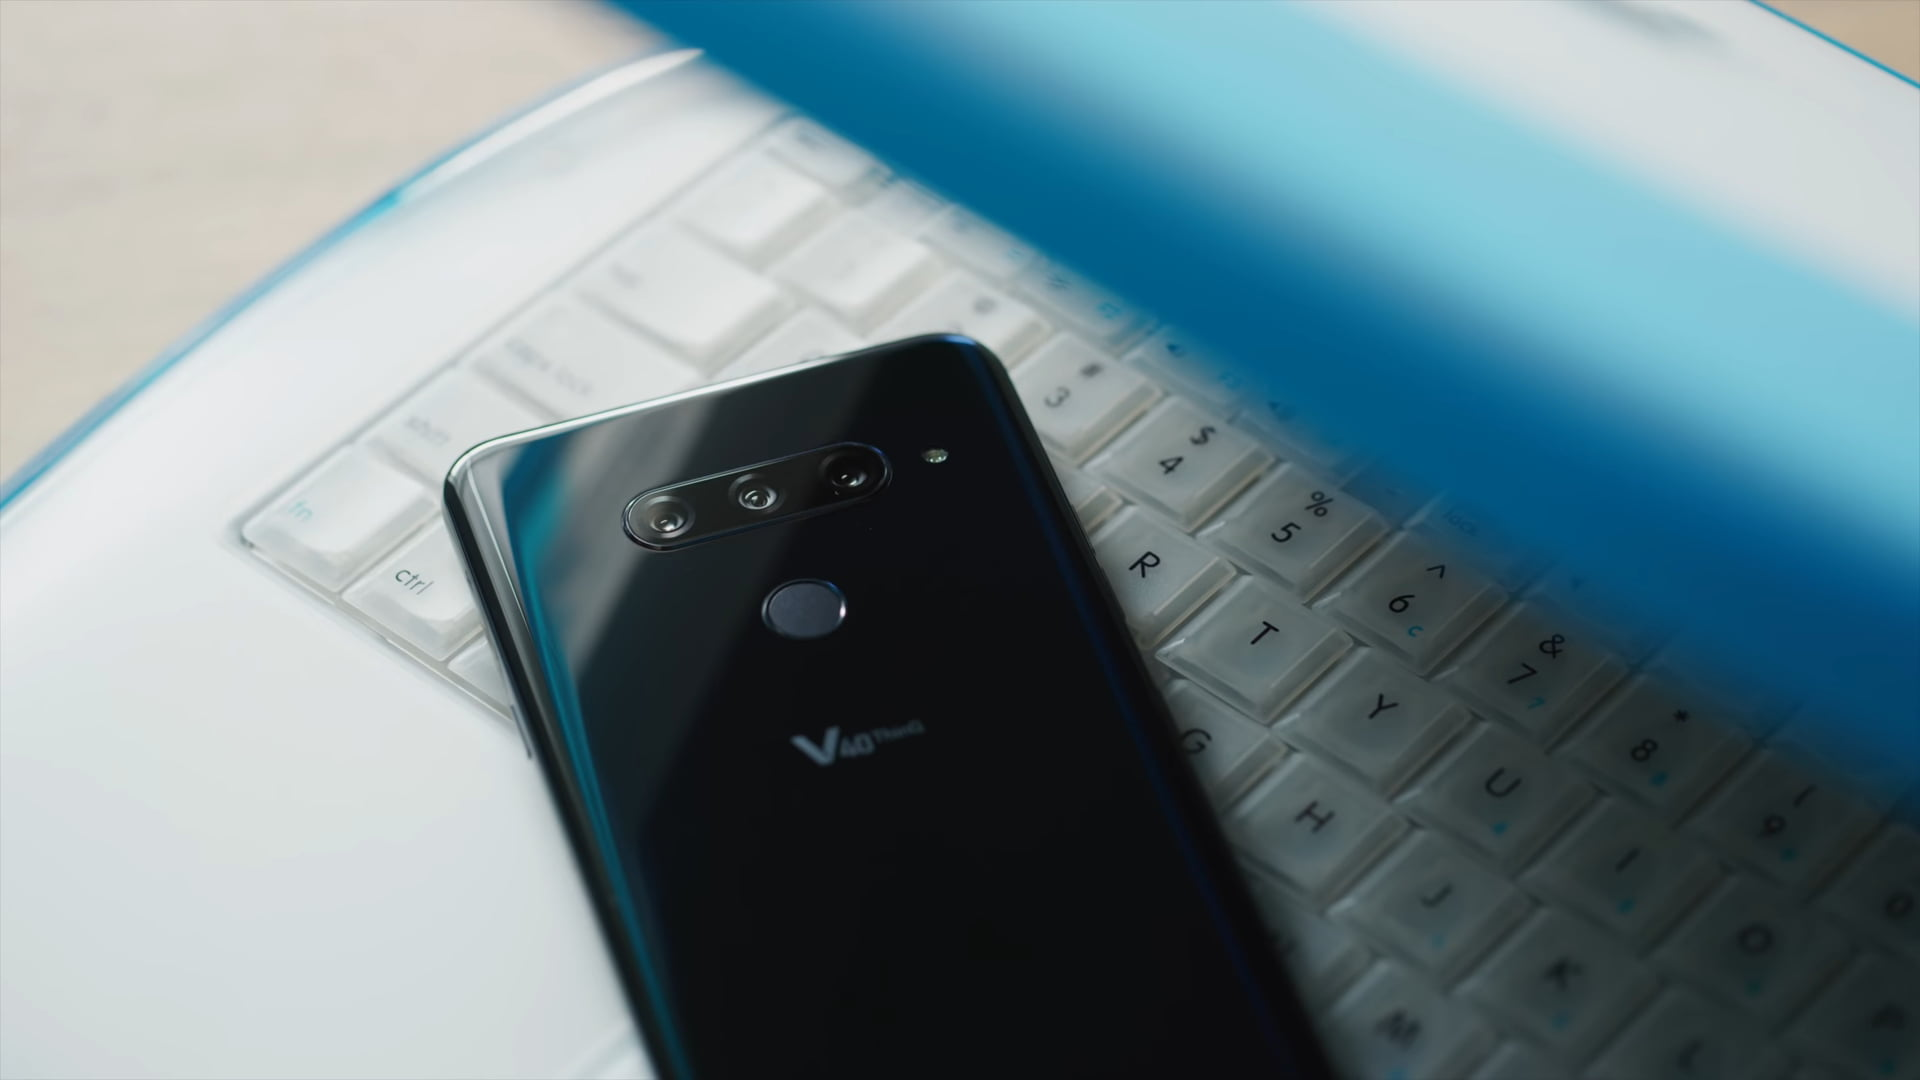 LG V40 ThinQ is now Official – Phone with 5 Cams